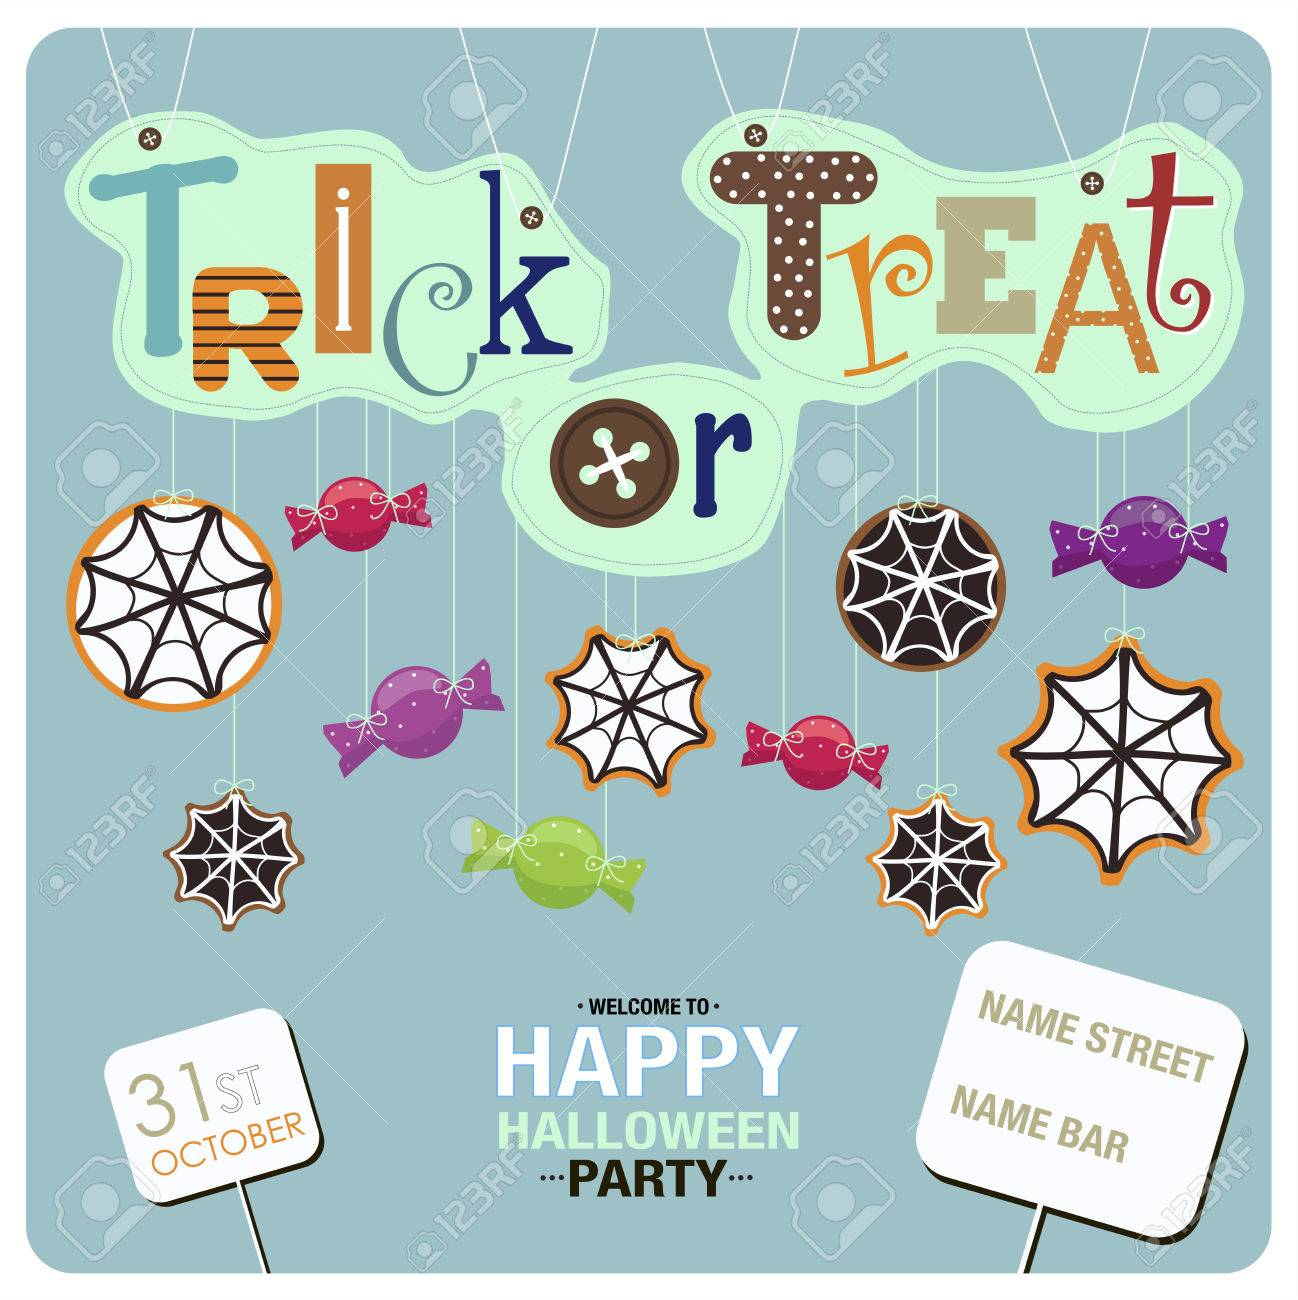 flyers design for happy halloween party candies spider webs